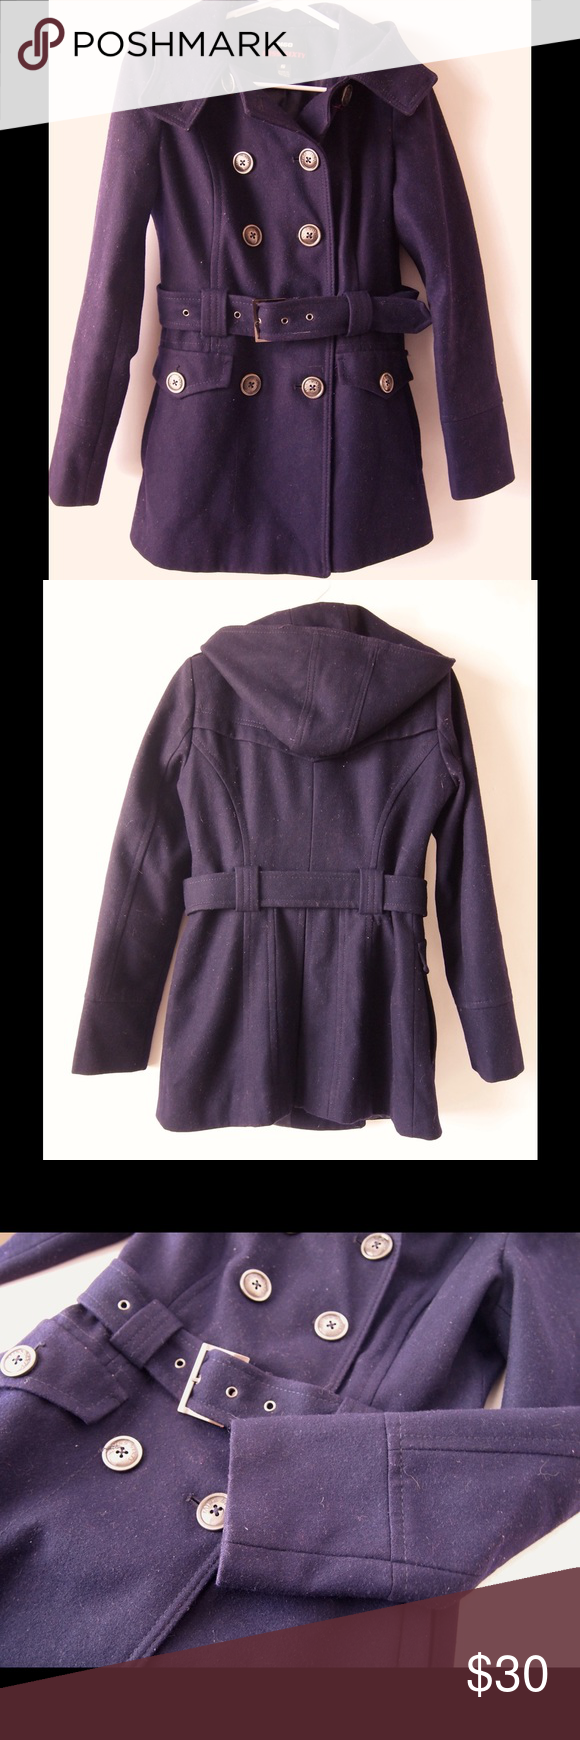 """Miss Sixty Purple Belted Hooded Wool Peacoat S Light signs of wear, no stand out issues.  Wool blend, fully lined.  Measurements- armpit- 18"""", waist - 30"""", shoulder - 14.5"""", back length 28"""", sleeve length from middle back collar to sleeve end is 31"""".  Size S. Miss Sixty Jackets & Coats Pea Coats"""